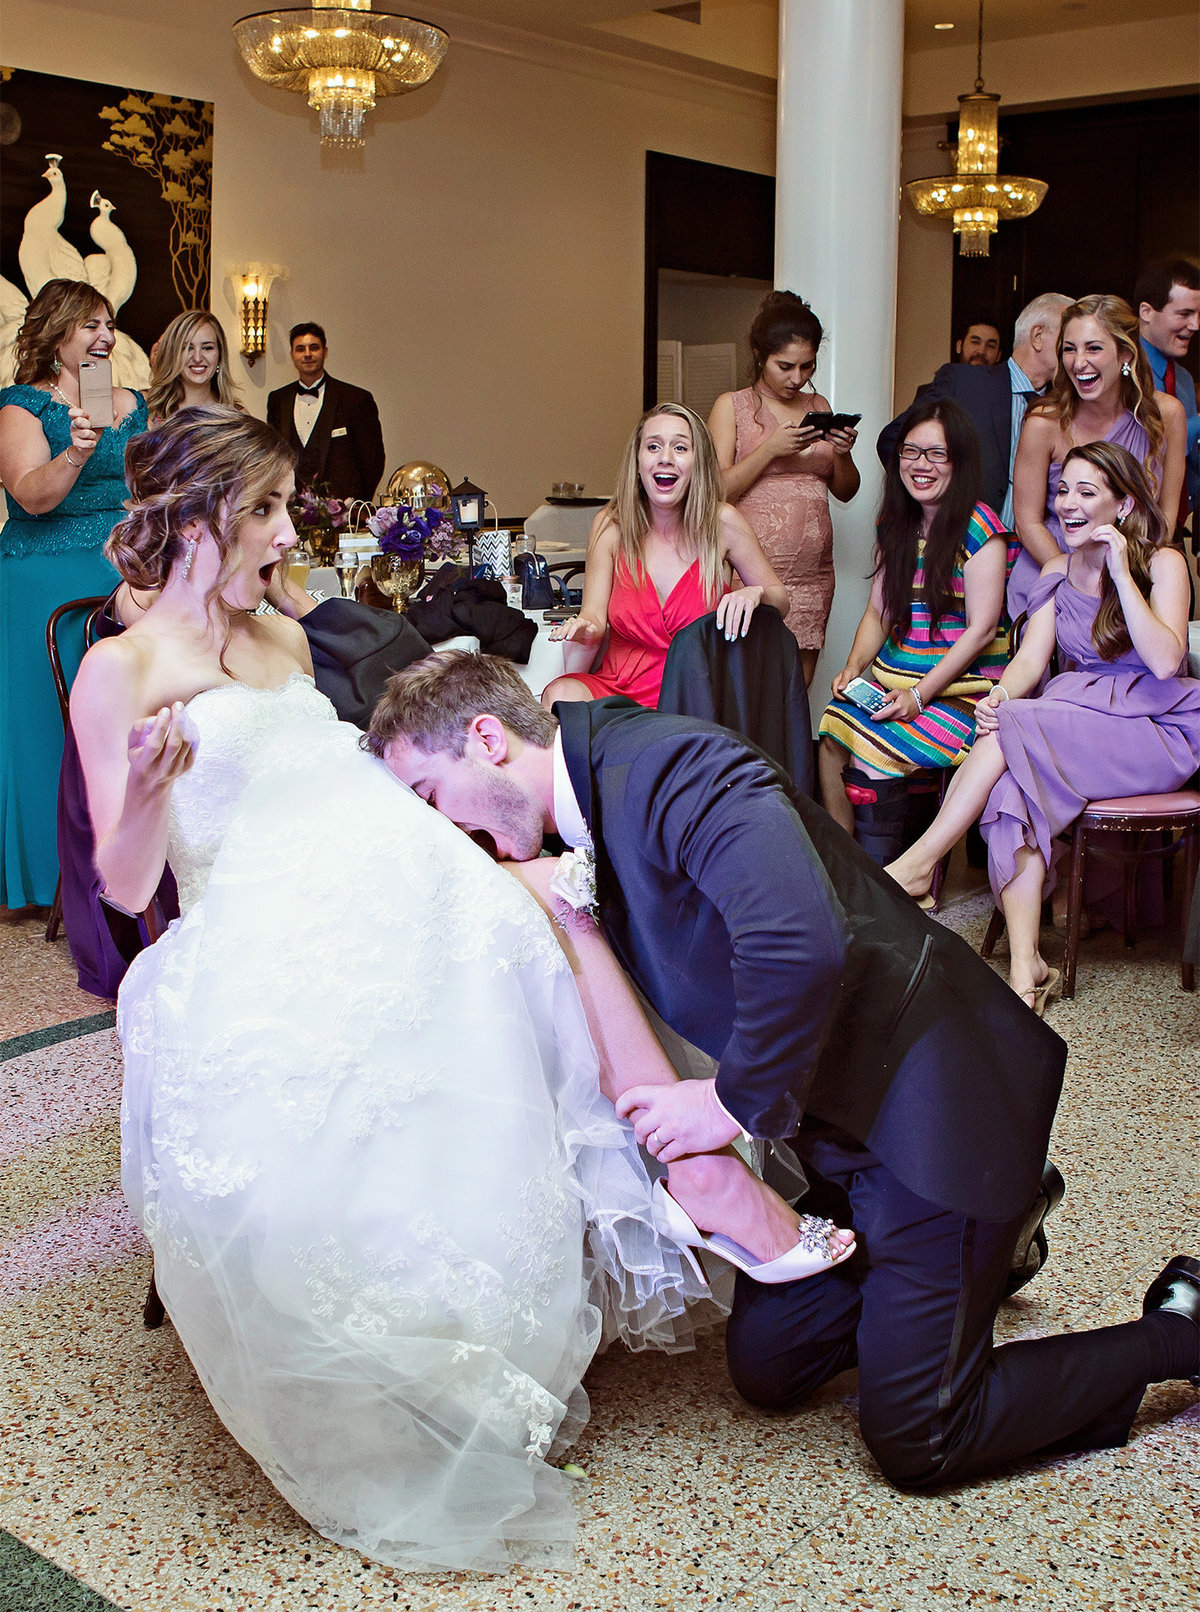 groom takes bride's garter off with his mouth during wedding reception at Arnaud's Restaurant New Orleans